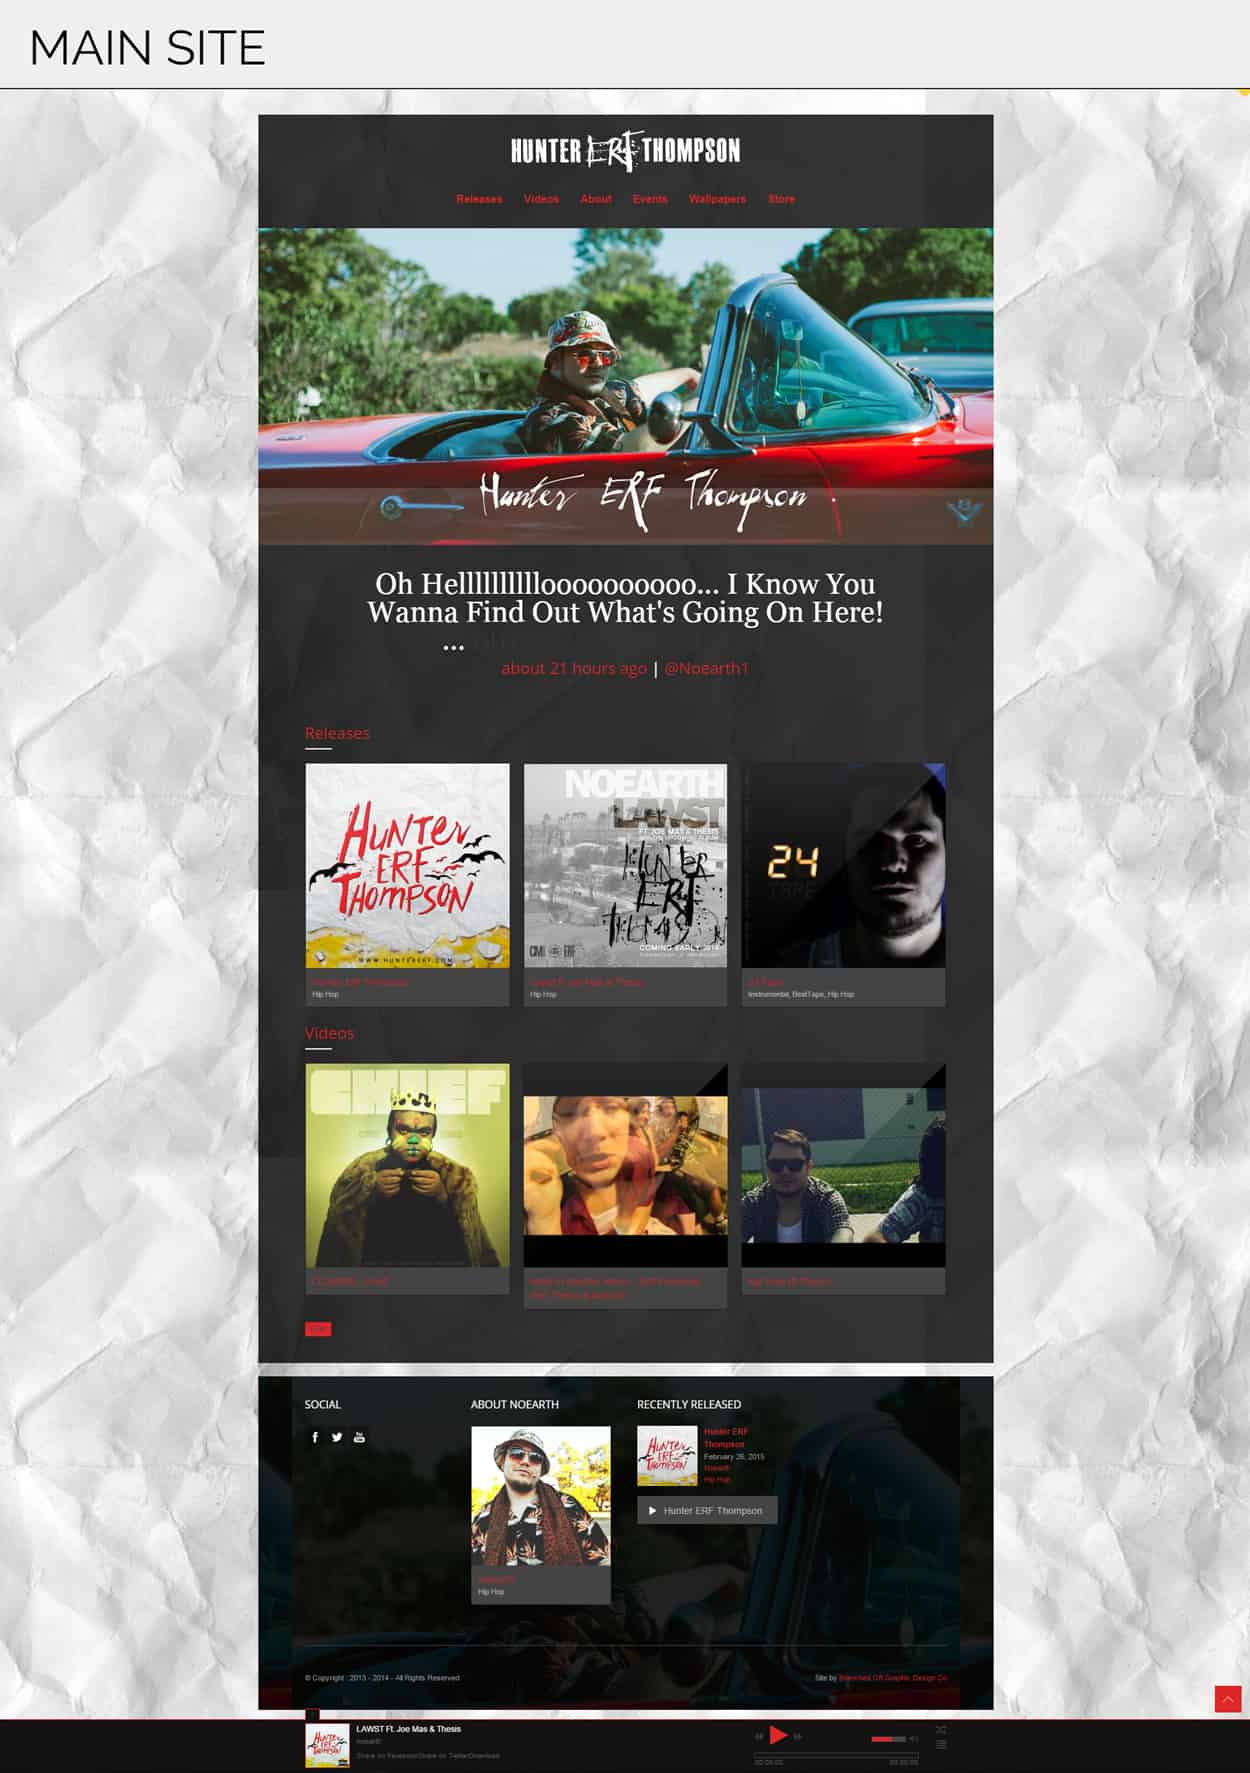 hunter erf thompson - website design - main